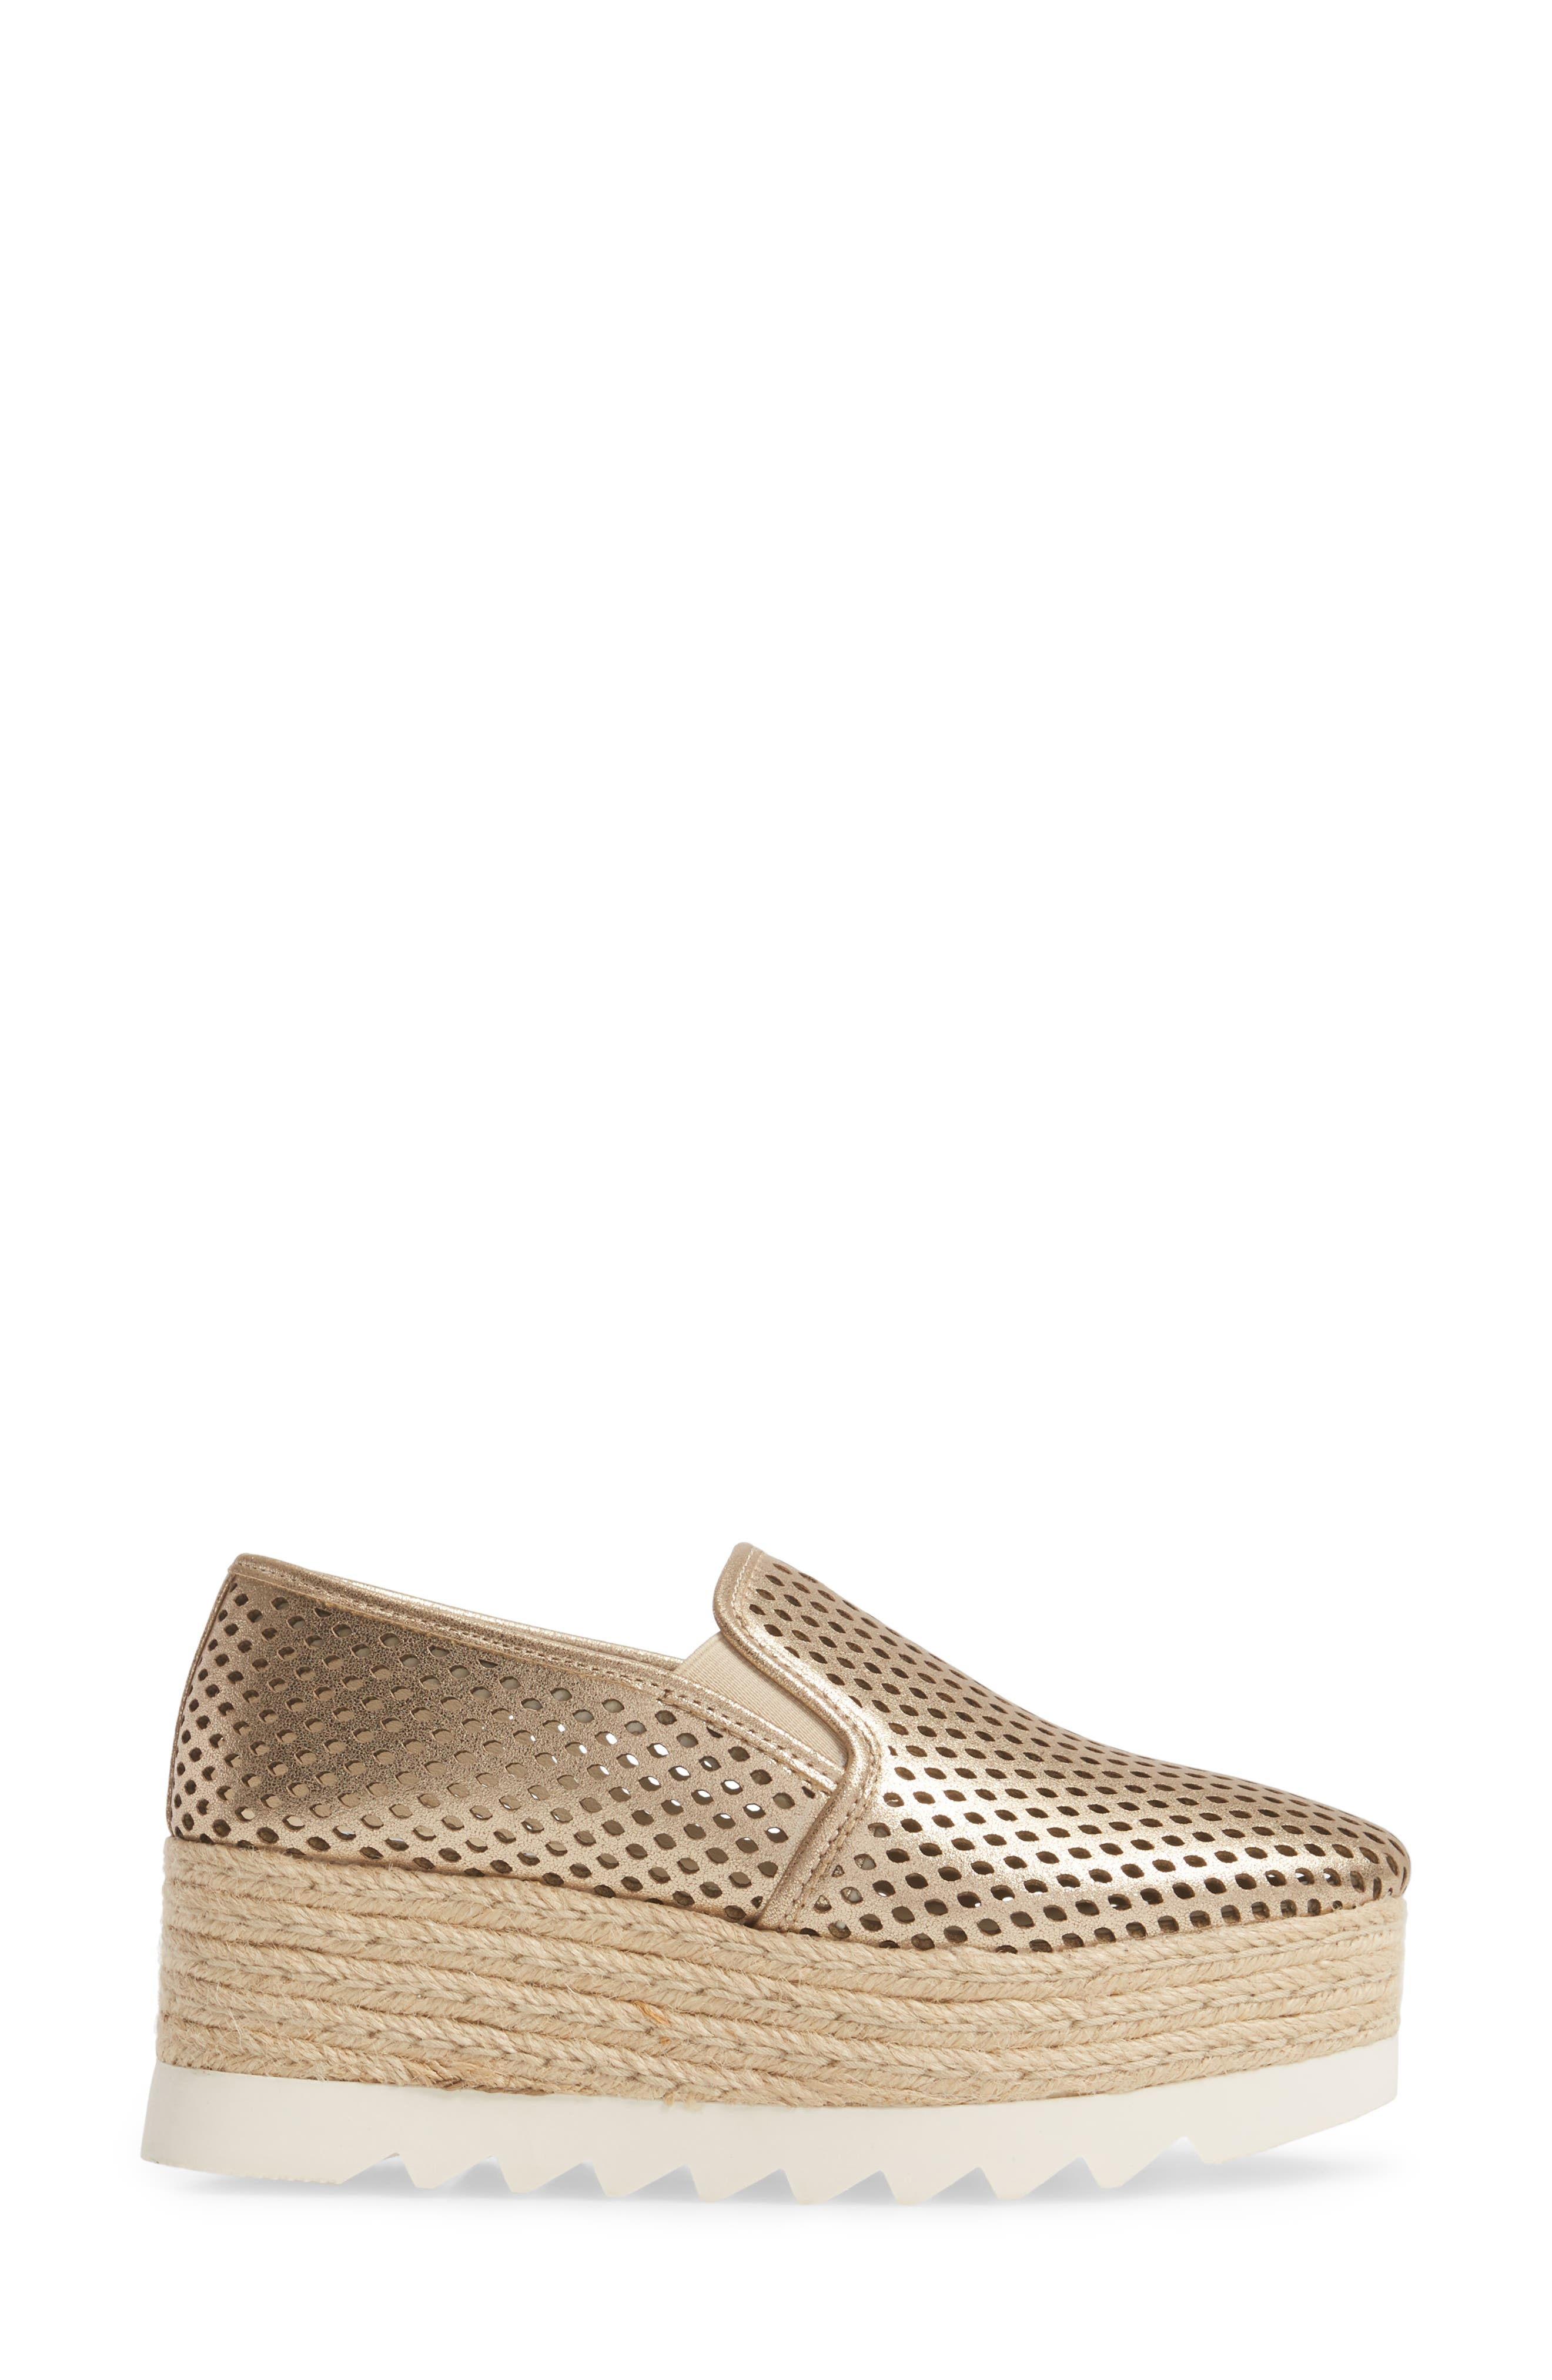 Kara Perforated Platform Loafer,                             Alternate thumbnail 3, color,                             Platinum